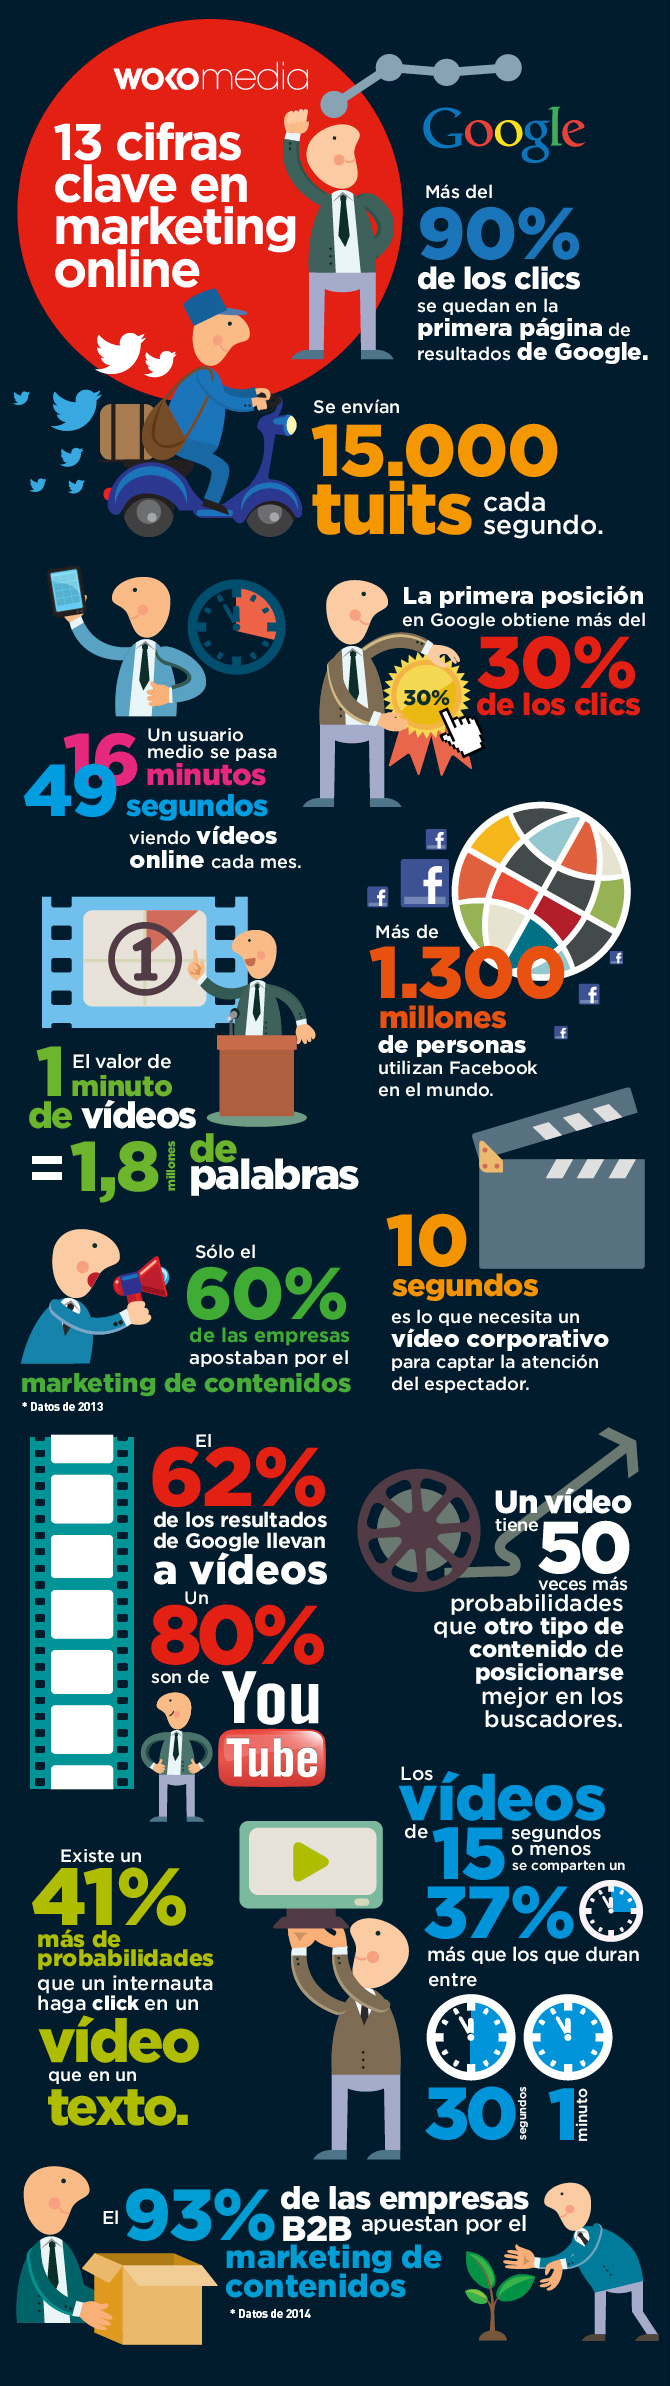 13 cifras clave en marketing online